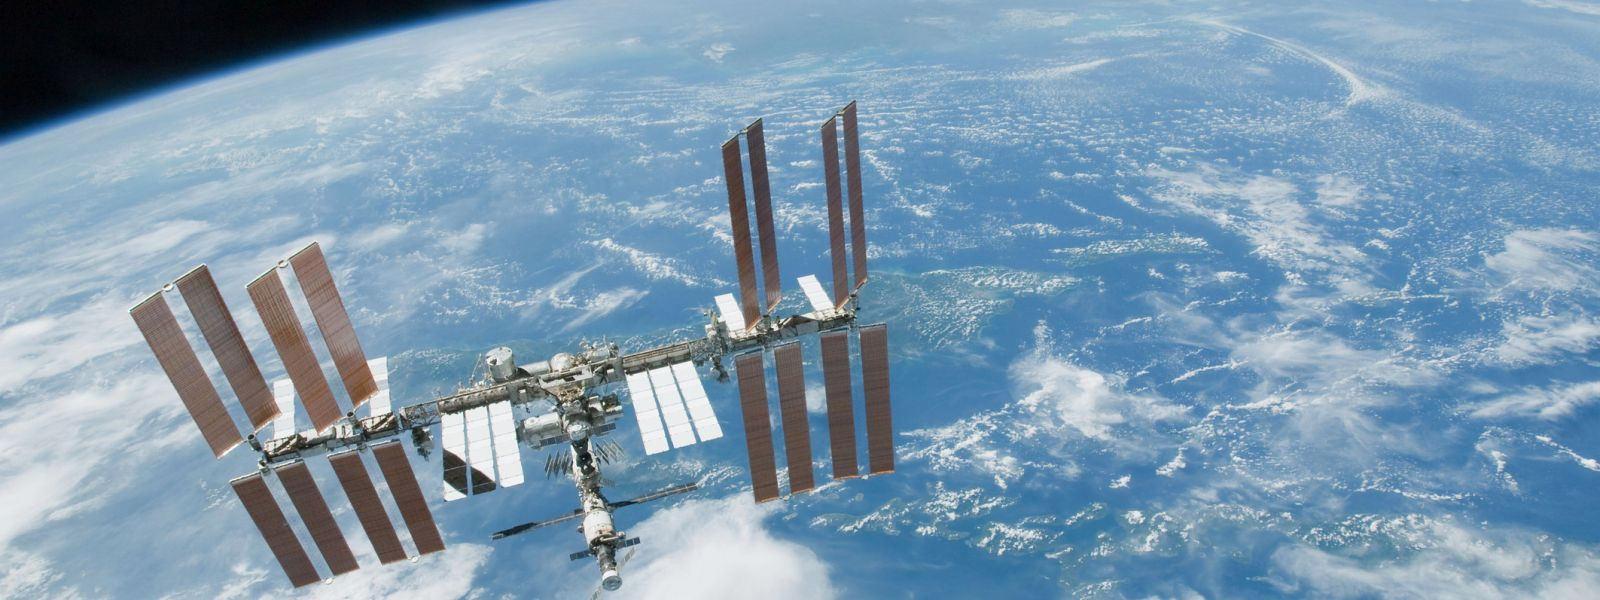 International Space Station in orbit around the Earth